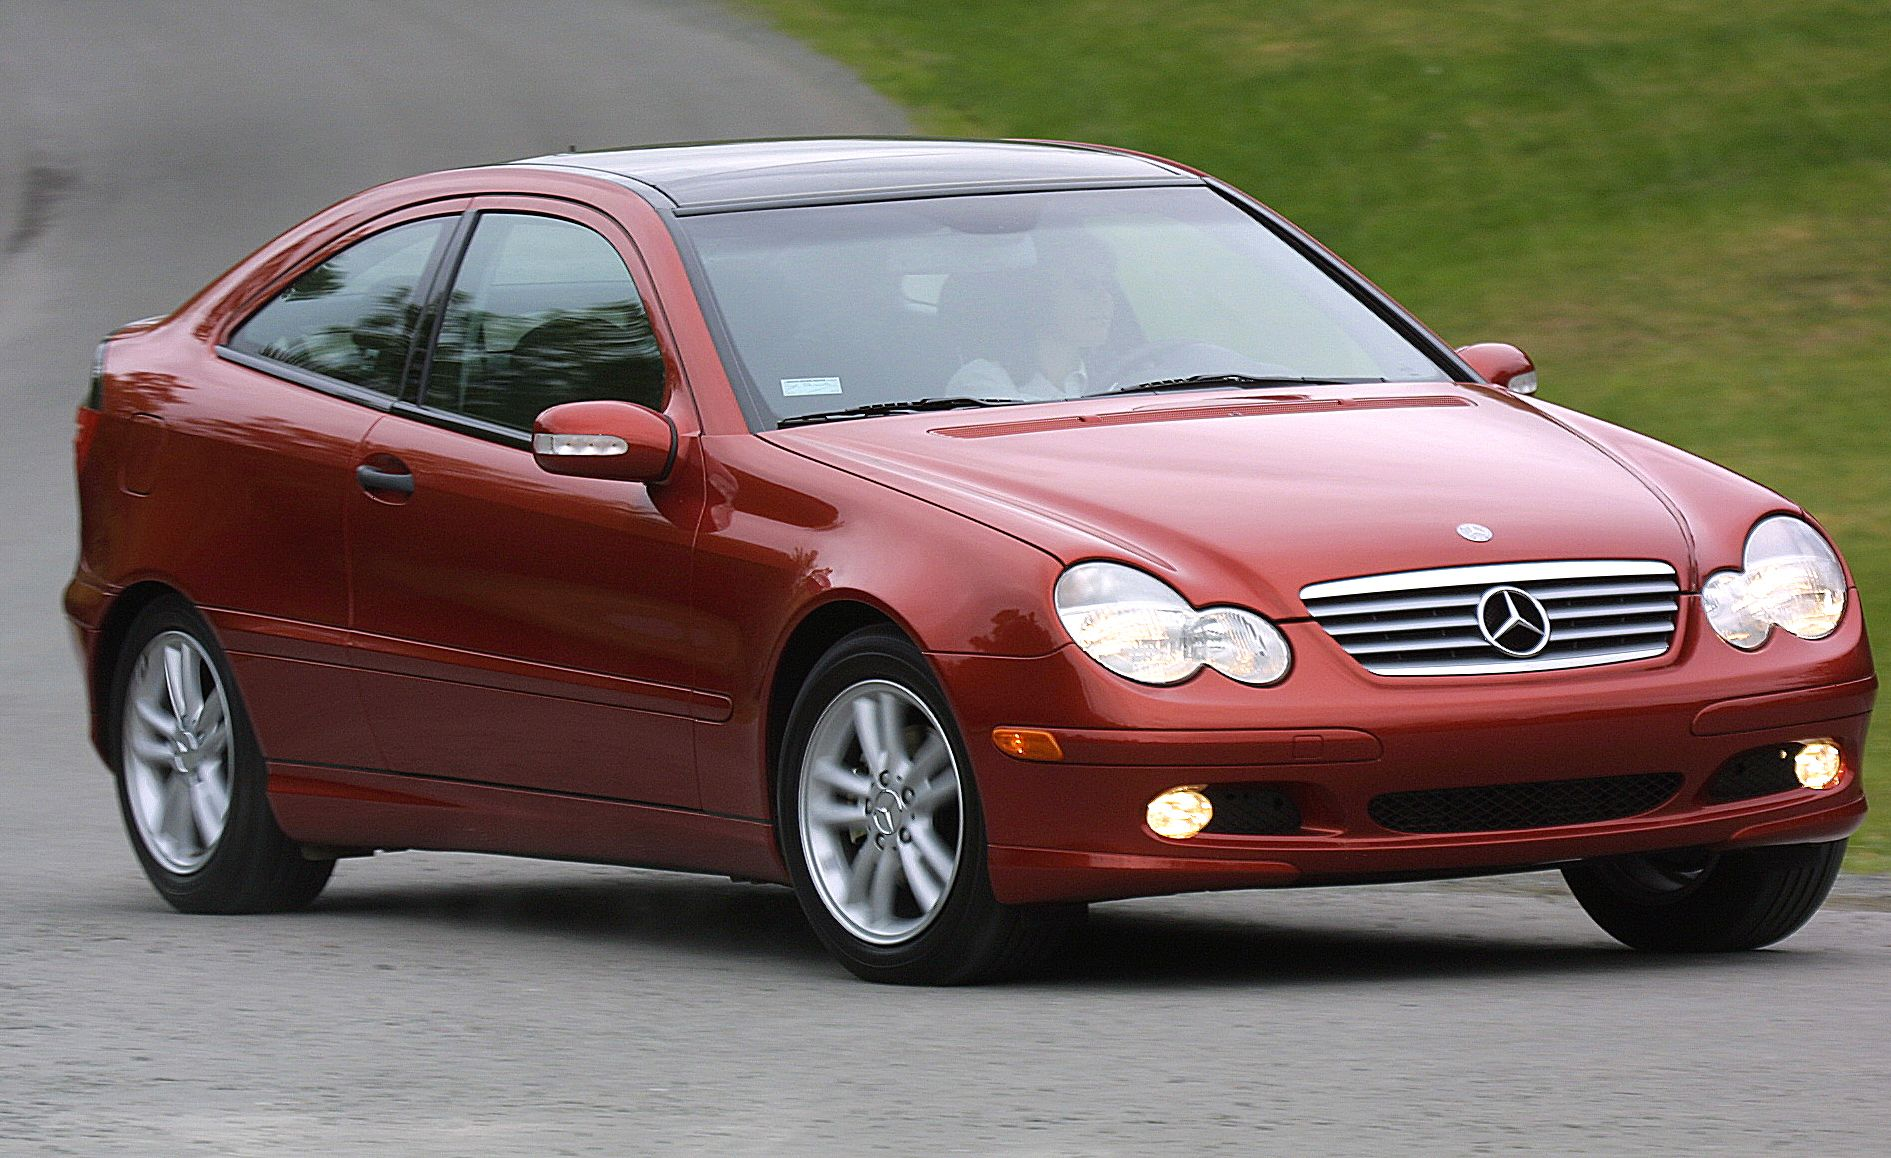 Mercedes benz c class sport models news car and driver for Mercedes benz c class models